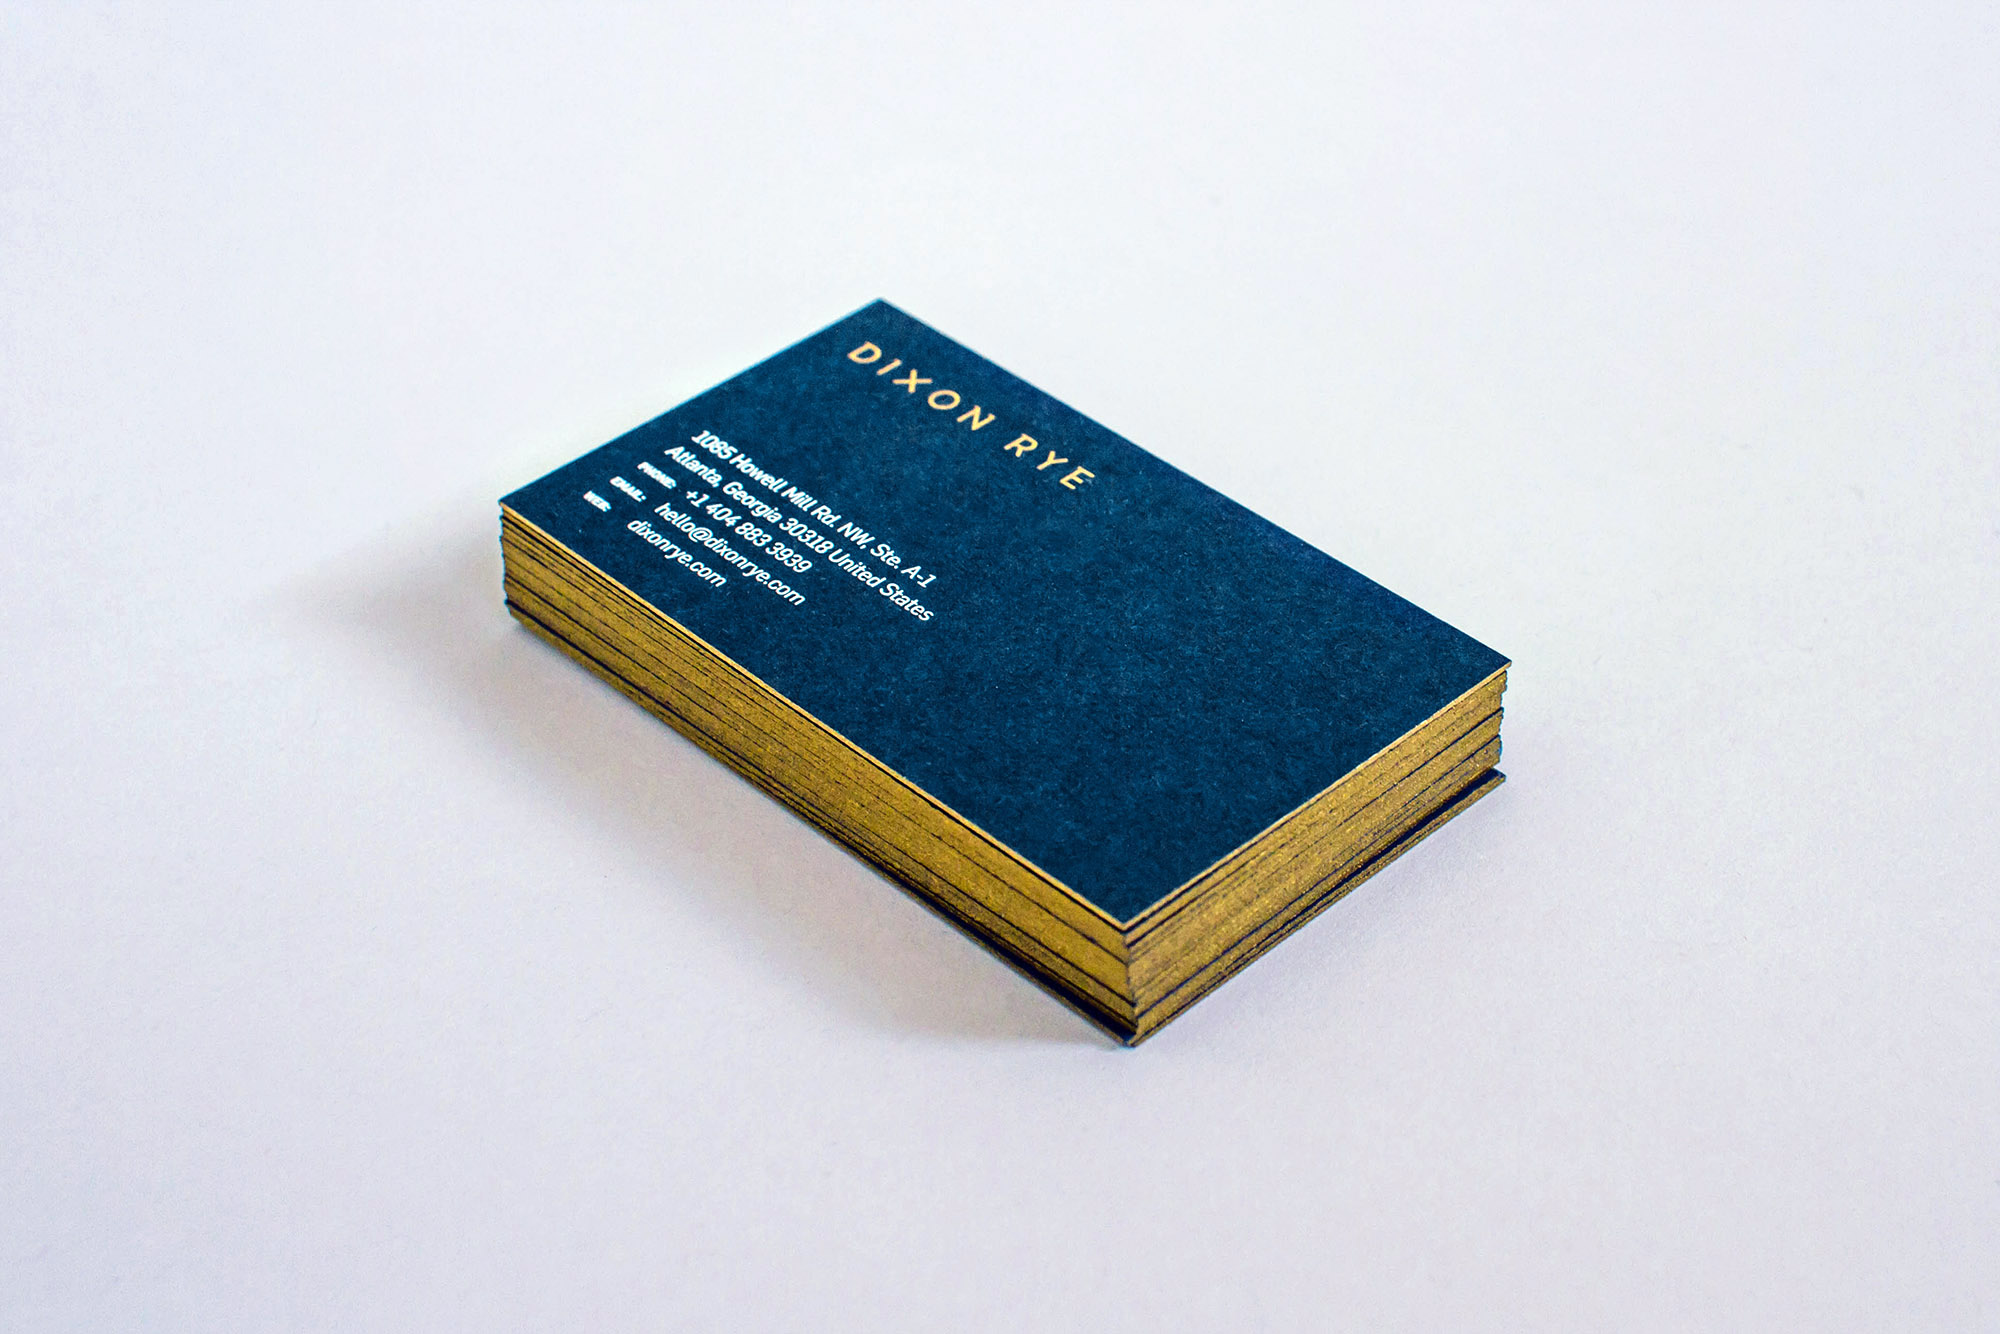 Stack of retail store business cards with Dixon Rye logo design screen printed in gold metallic Pantone on navy paper, with store info in white ink, and gold edge painting along the sides.